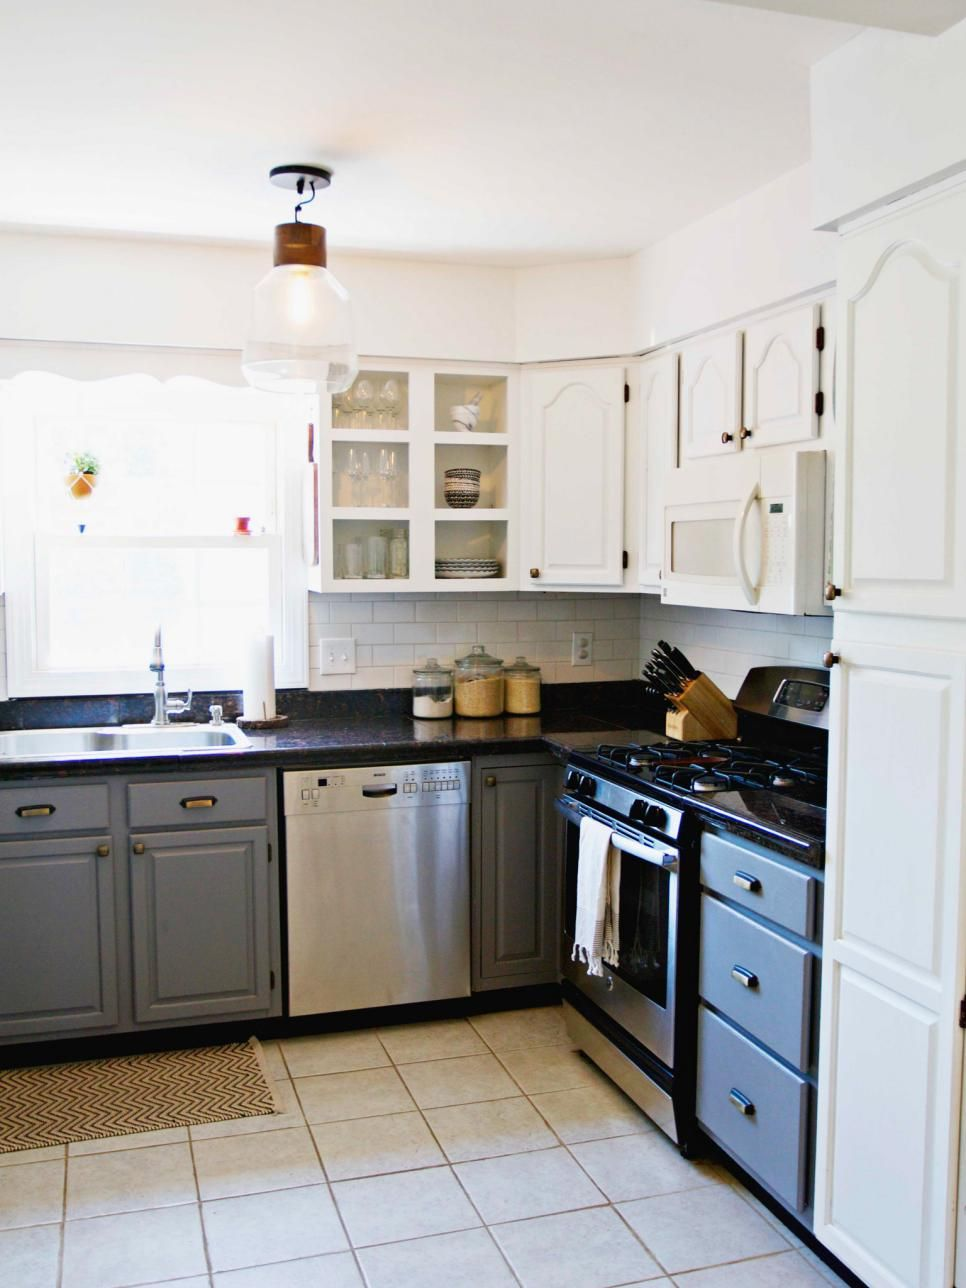 Before And After Kitchen Remodels On A Budget